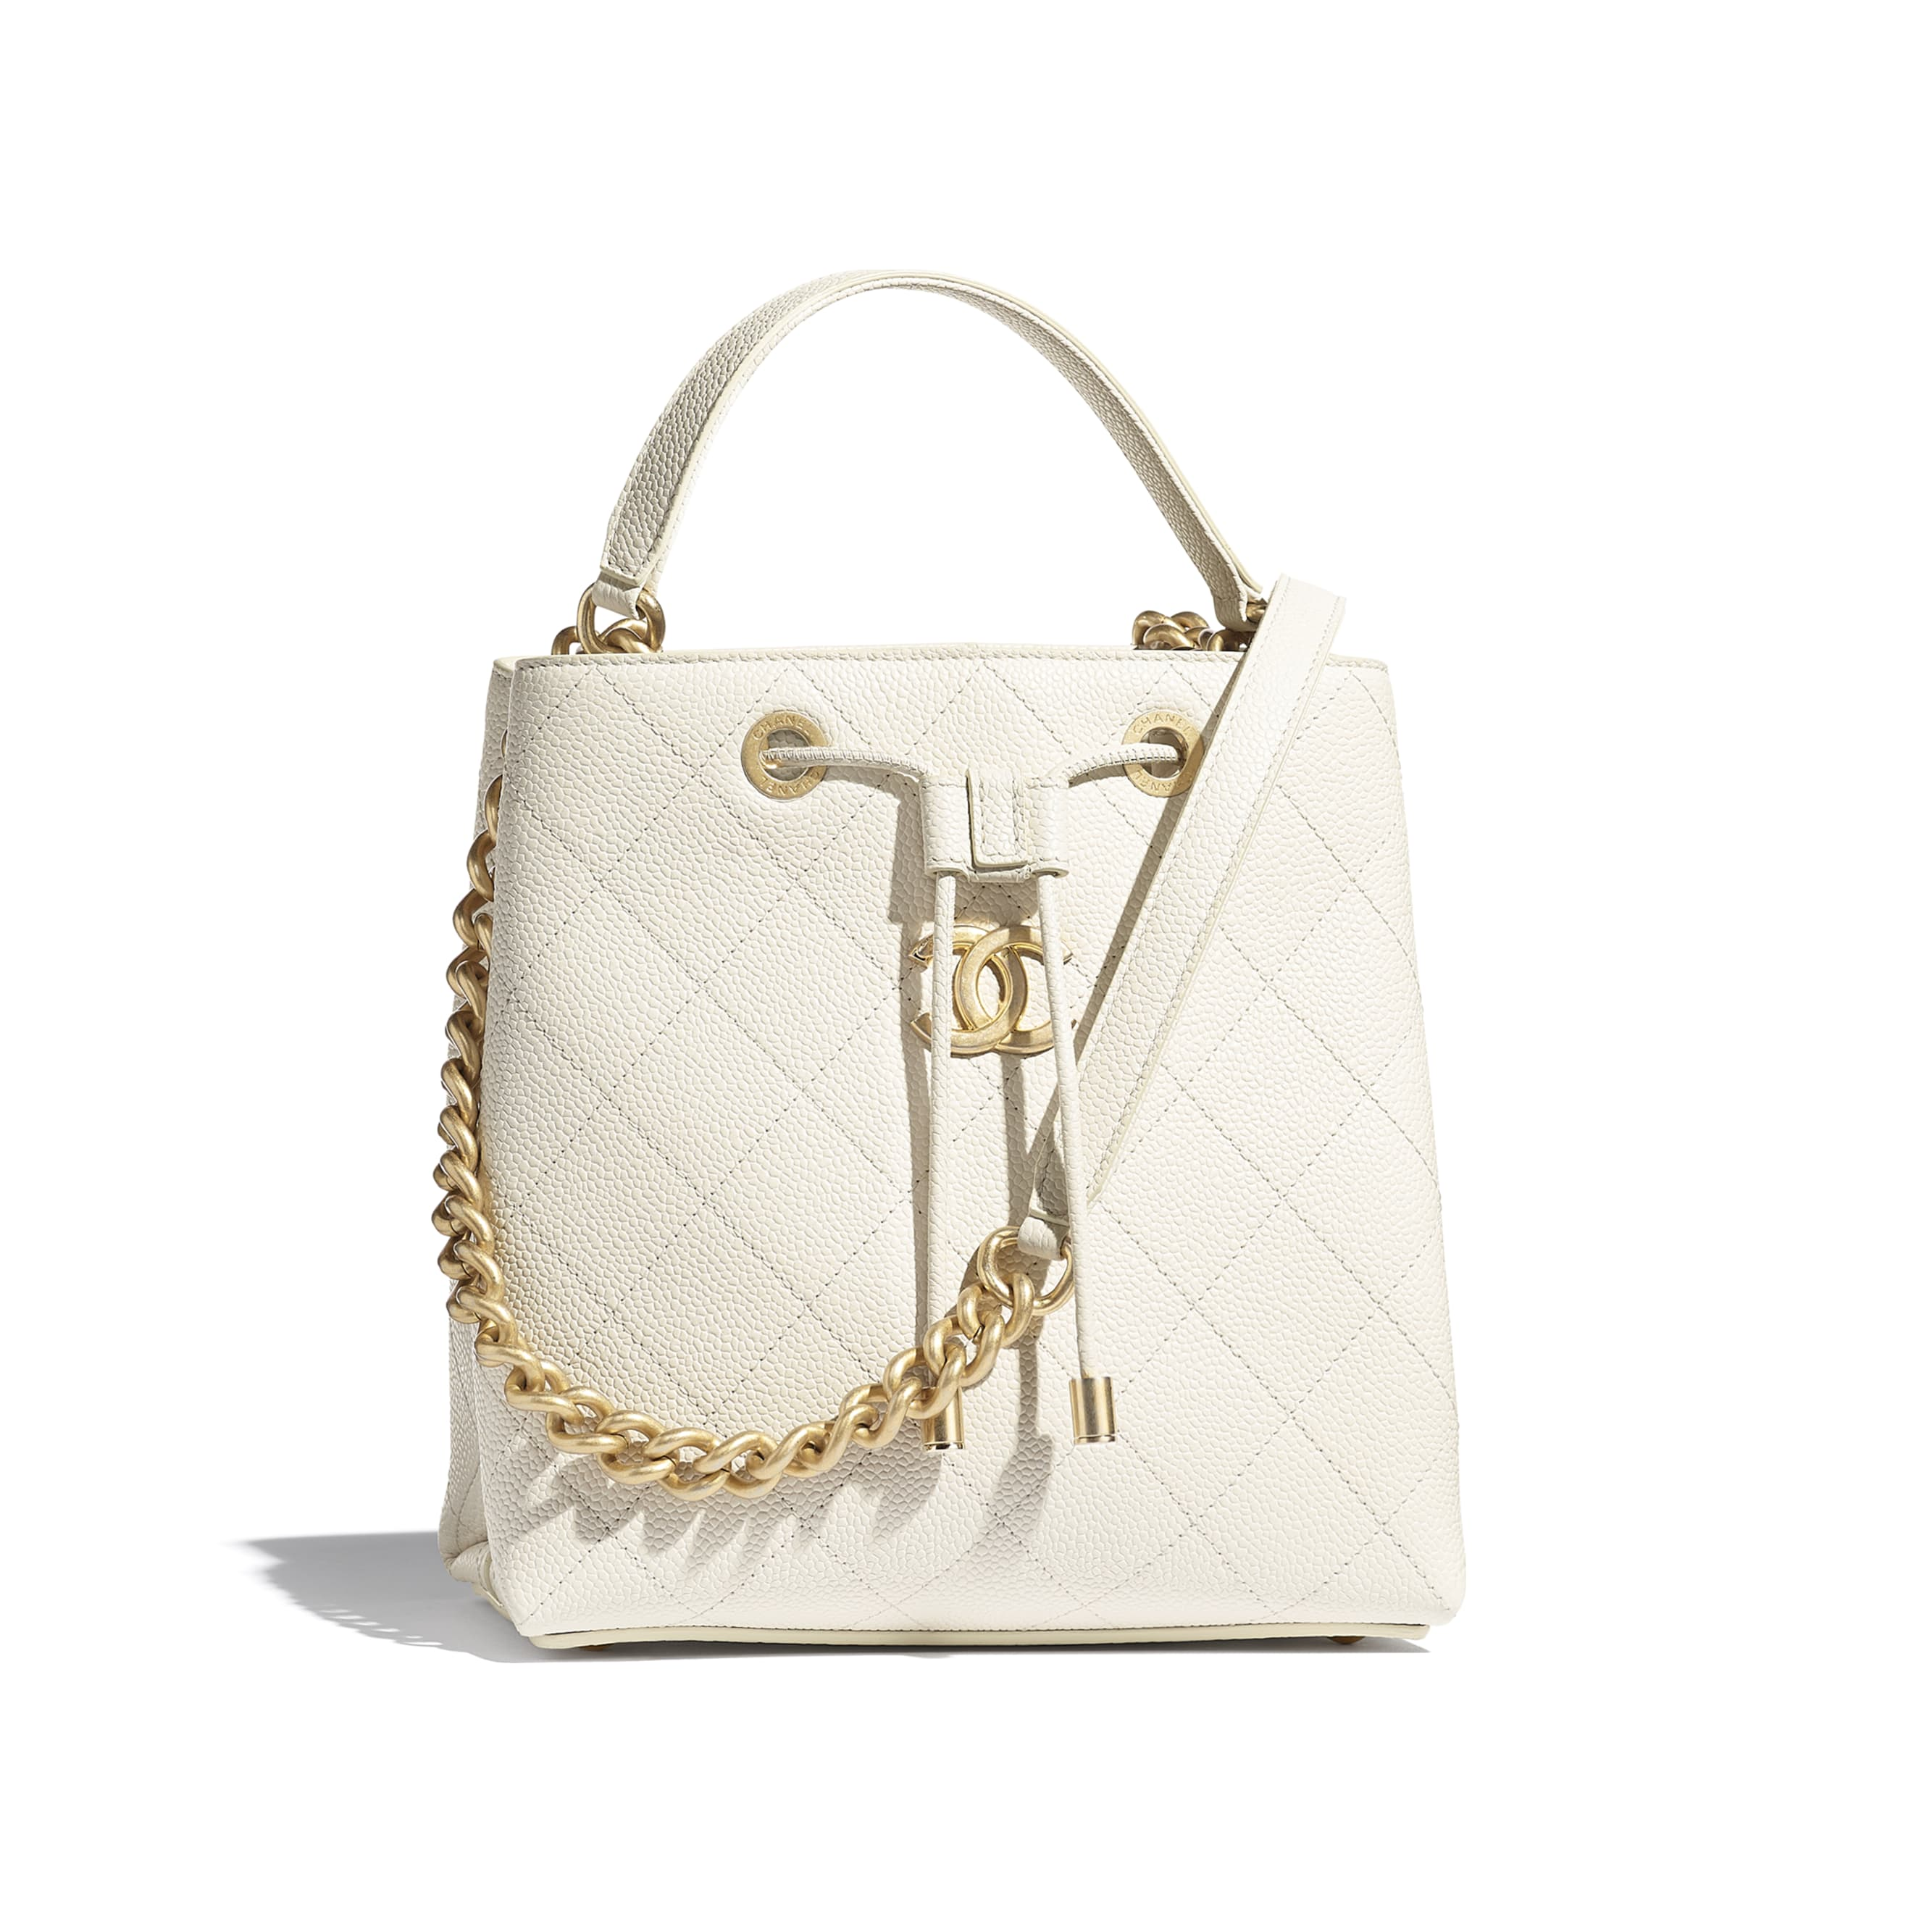 Drawstring Bag - White - Grained Calfskin & Gold-Tone Metal - CHANEL - Default view - see standard sized version